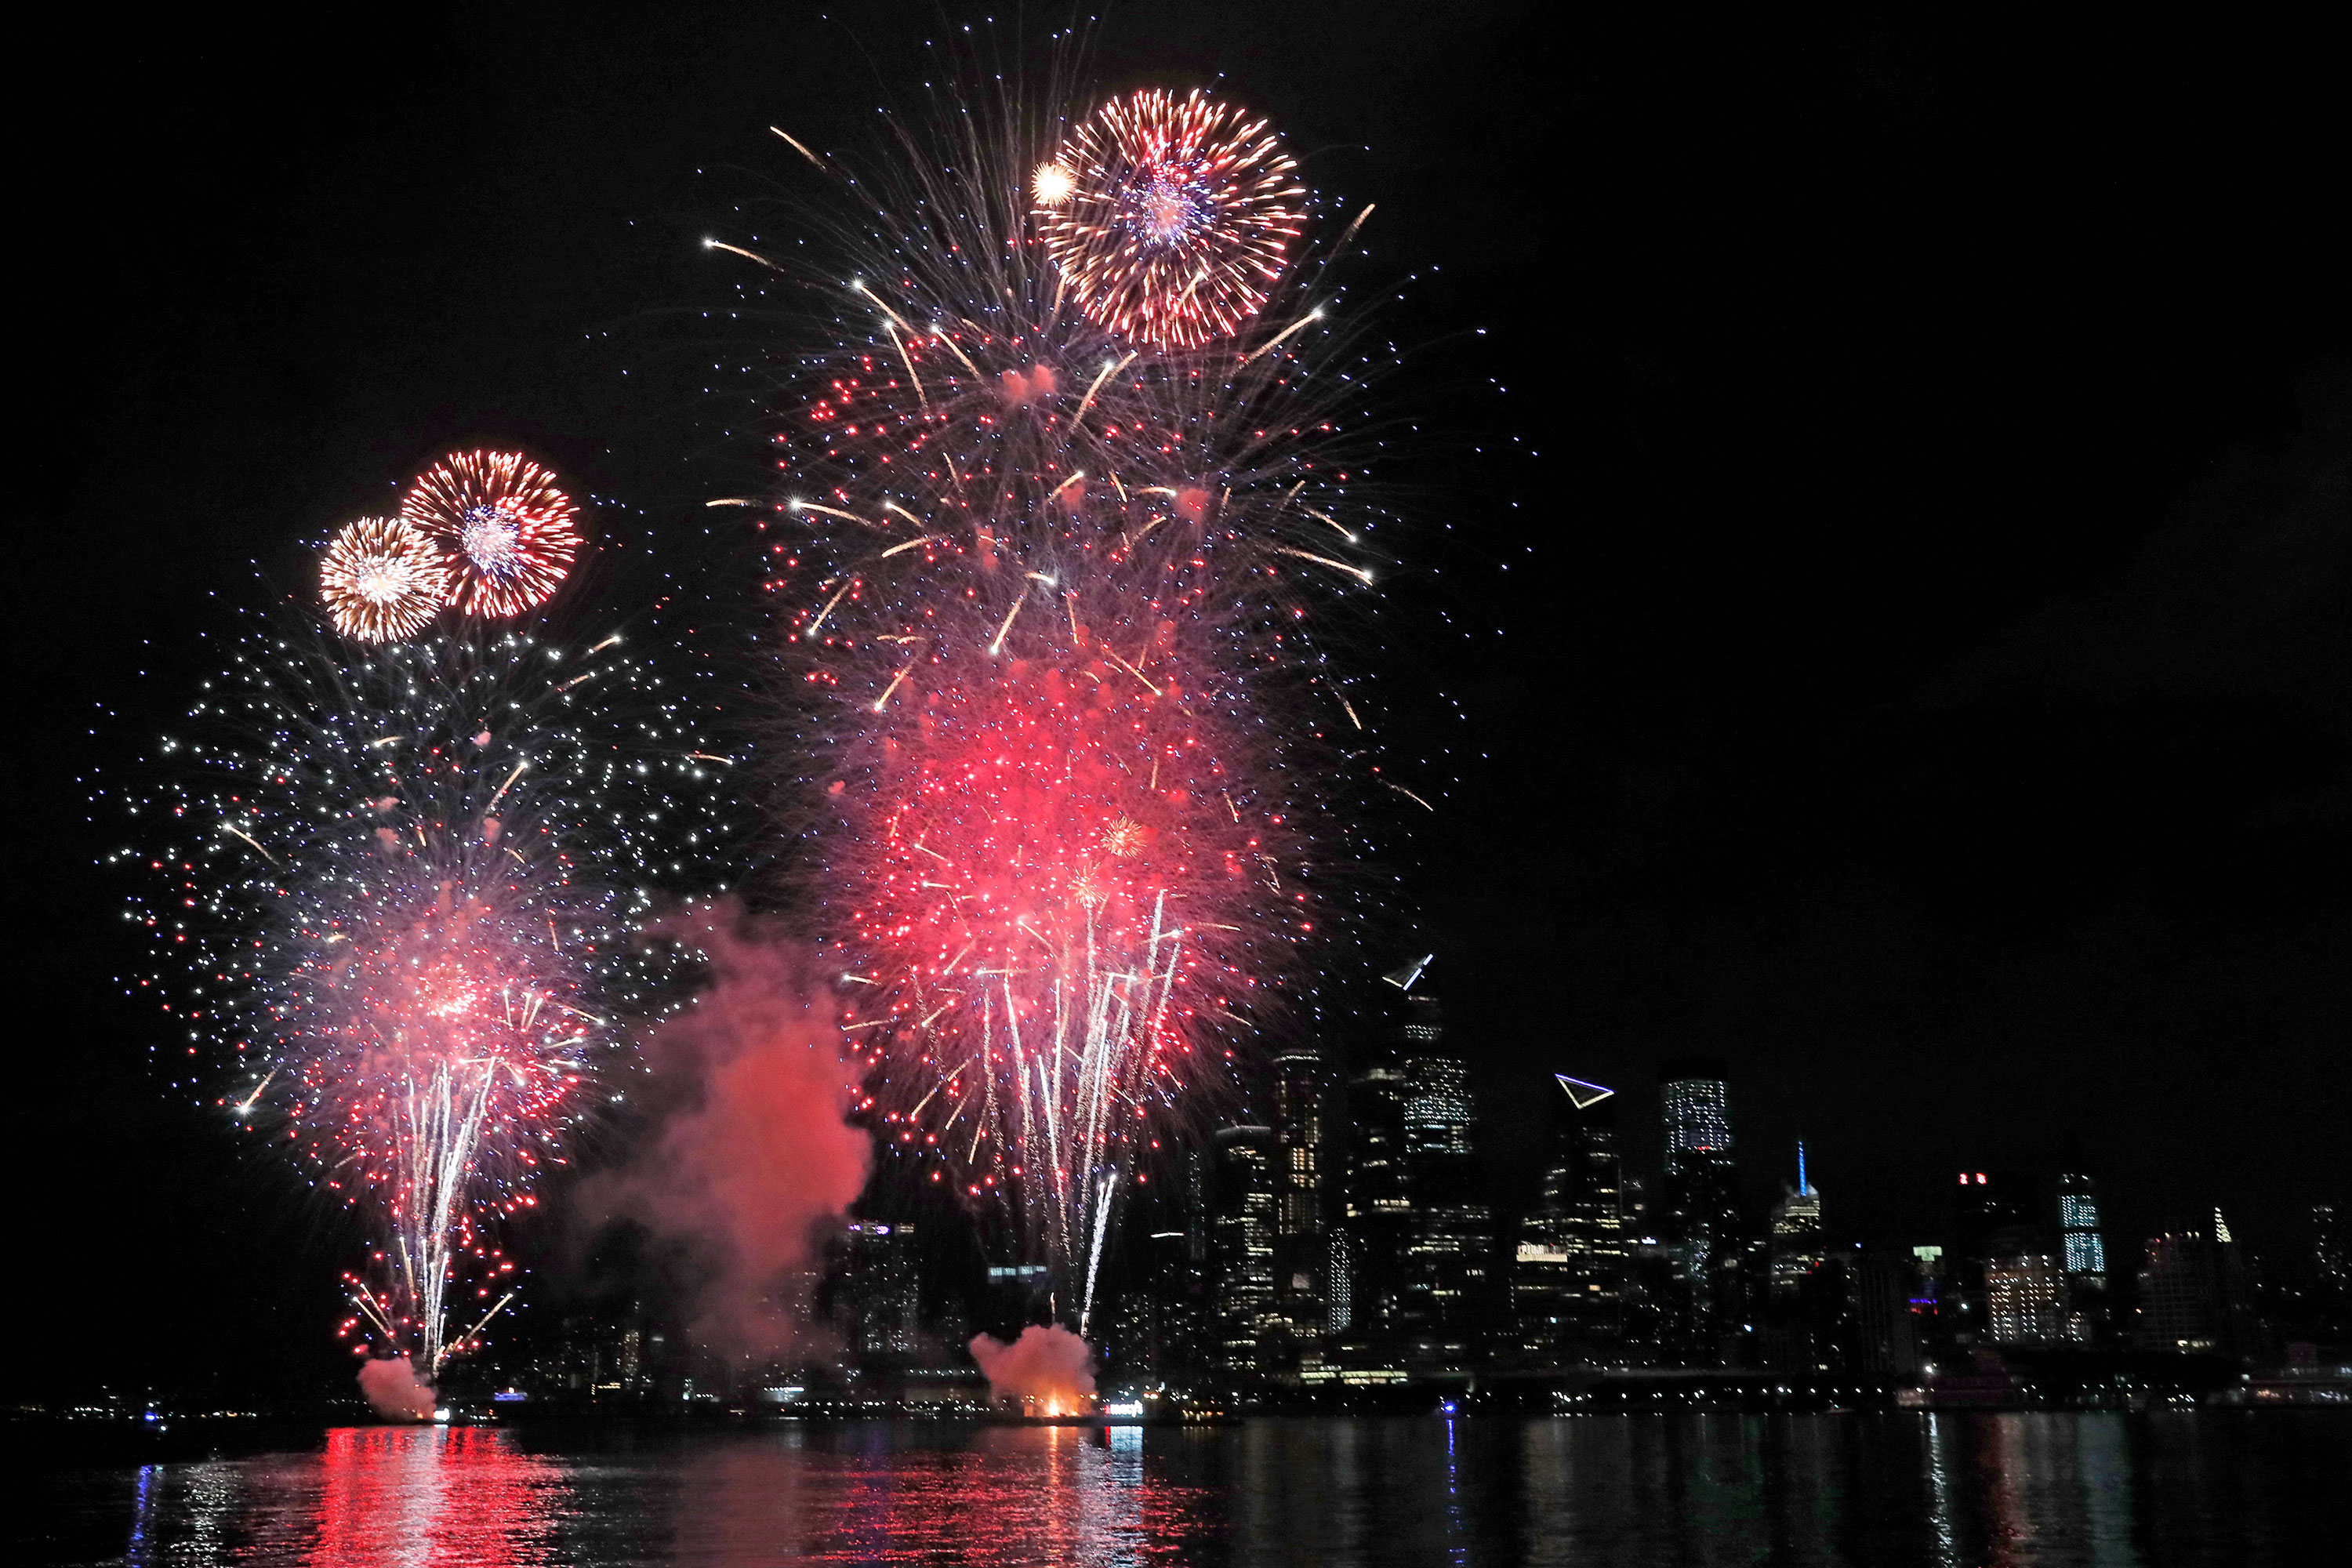 A fireworks display sponsored by Macy's explode over the Hudson Yards area of Manhattan on June 30 in New York.